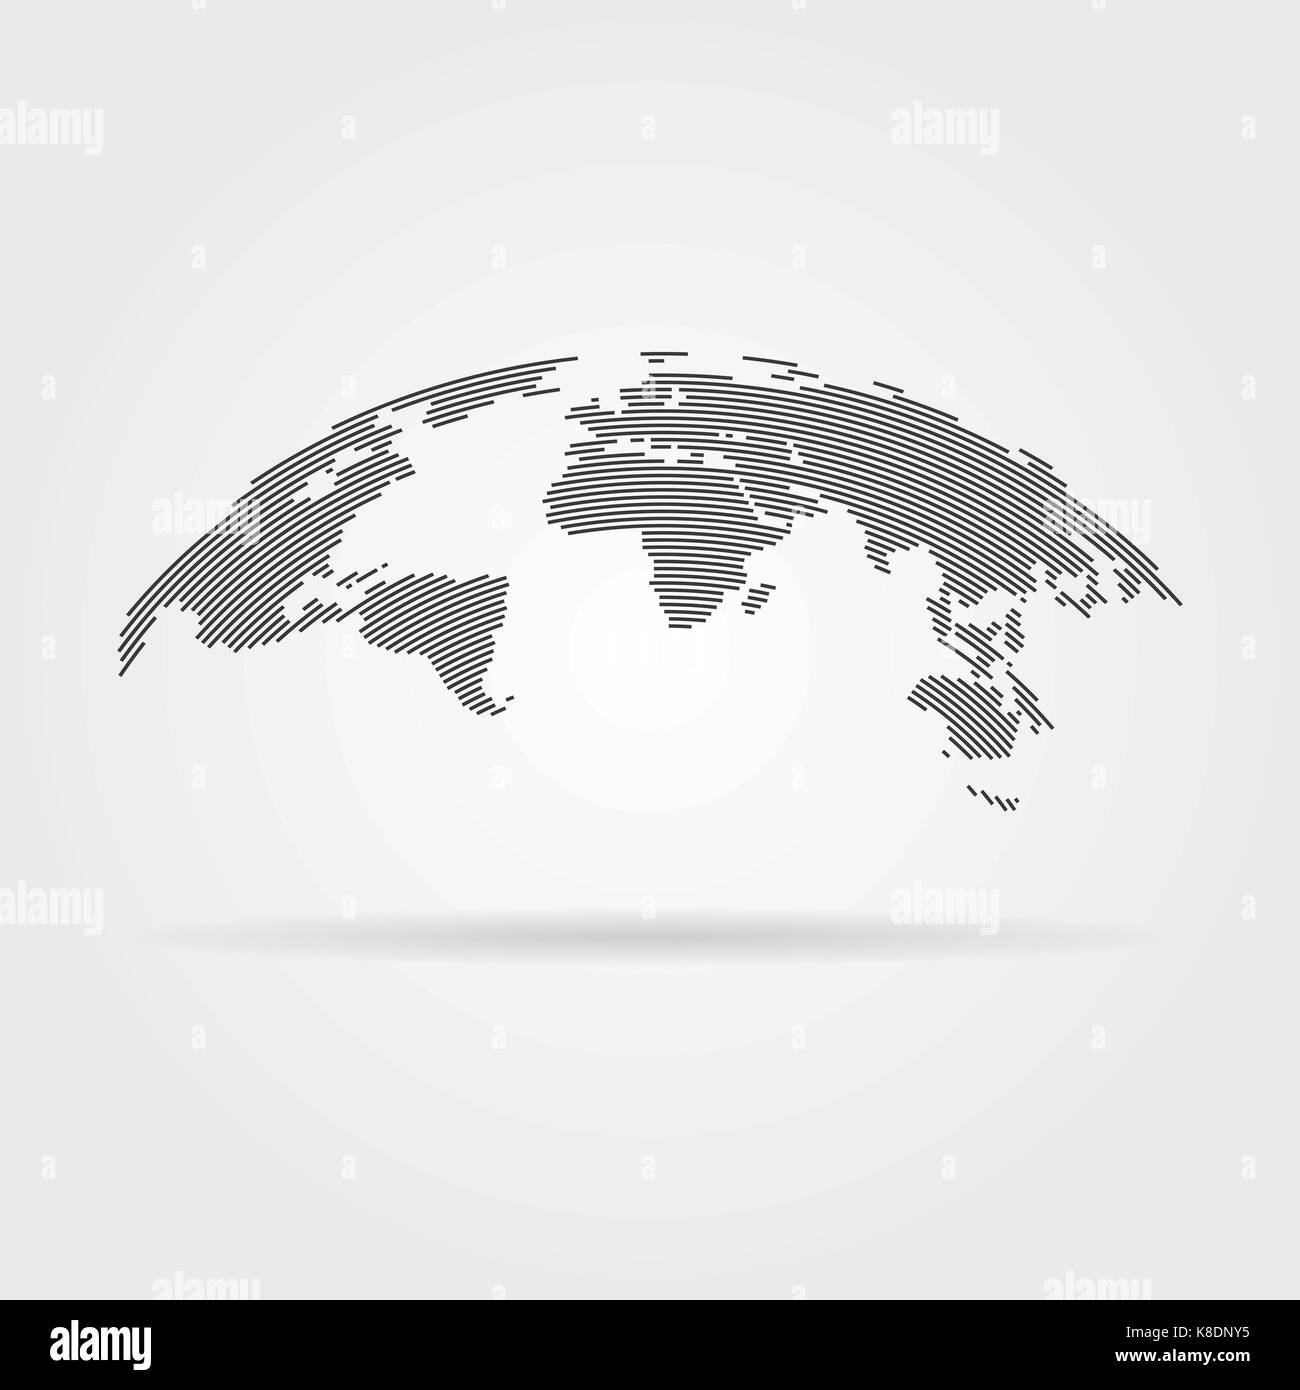 Simple world map stock photos simple world map stock images alamy simple black world map from thin line stock image gumiabroncs Gallery